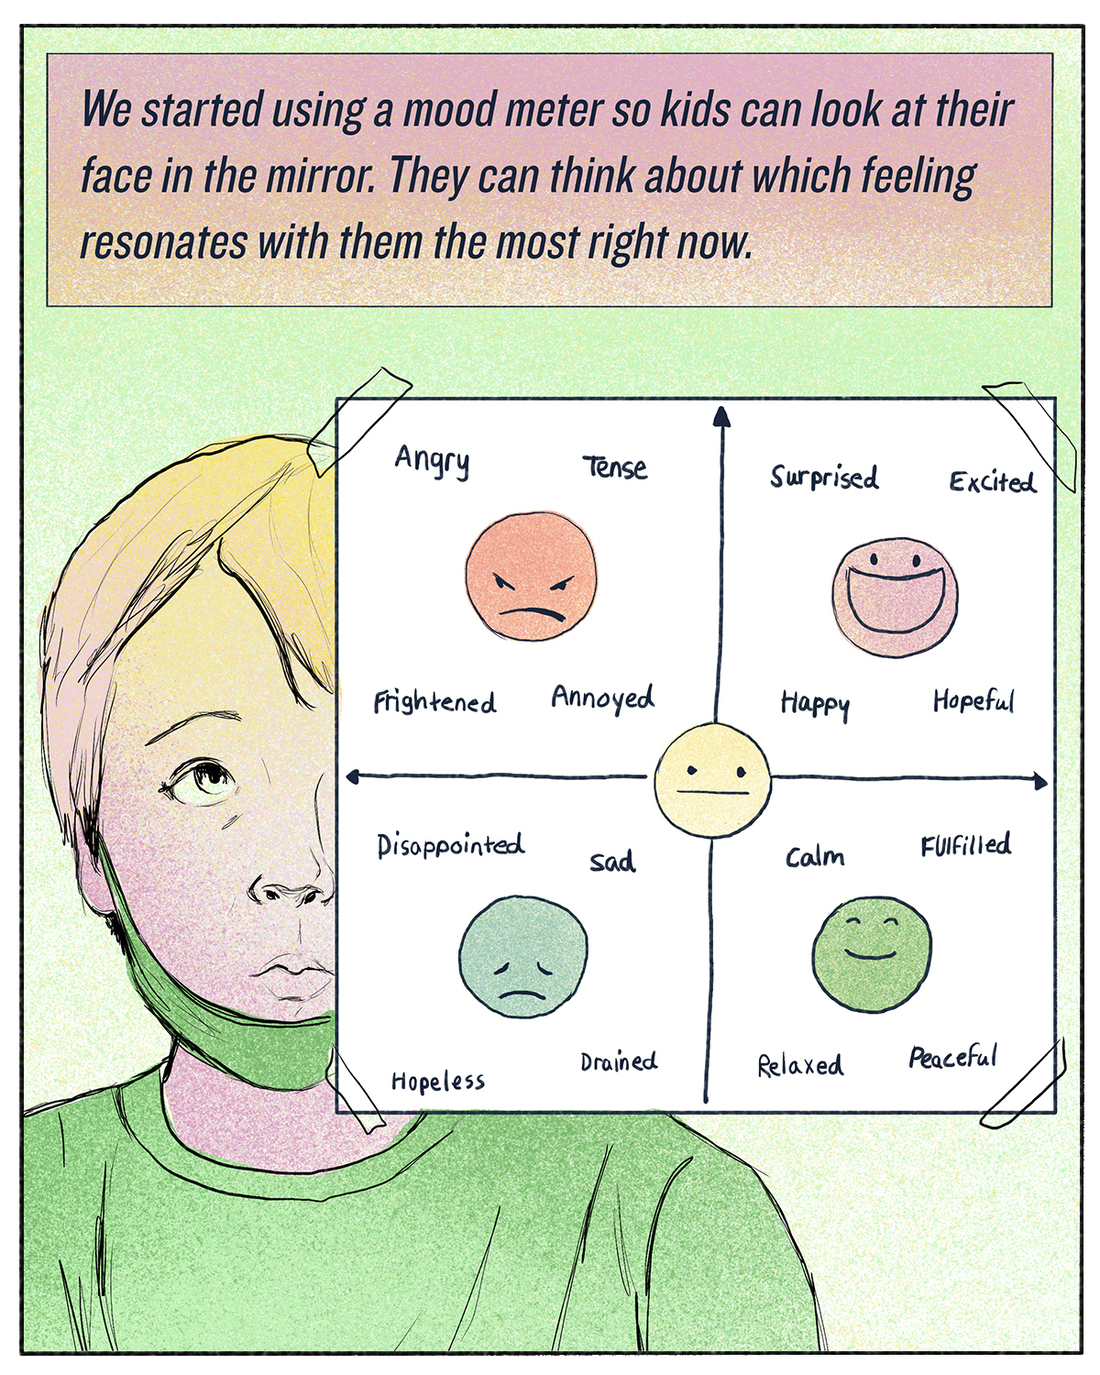 """We started using a mood meter so kids can look at their face in the mirror. They can think about which feeling resonates with them the most right now."""